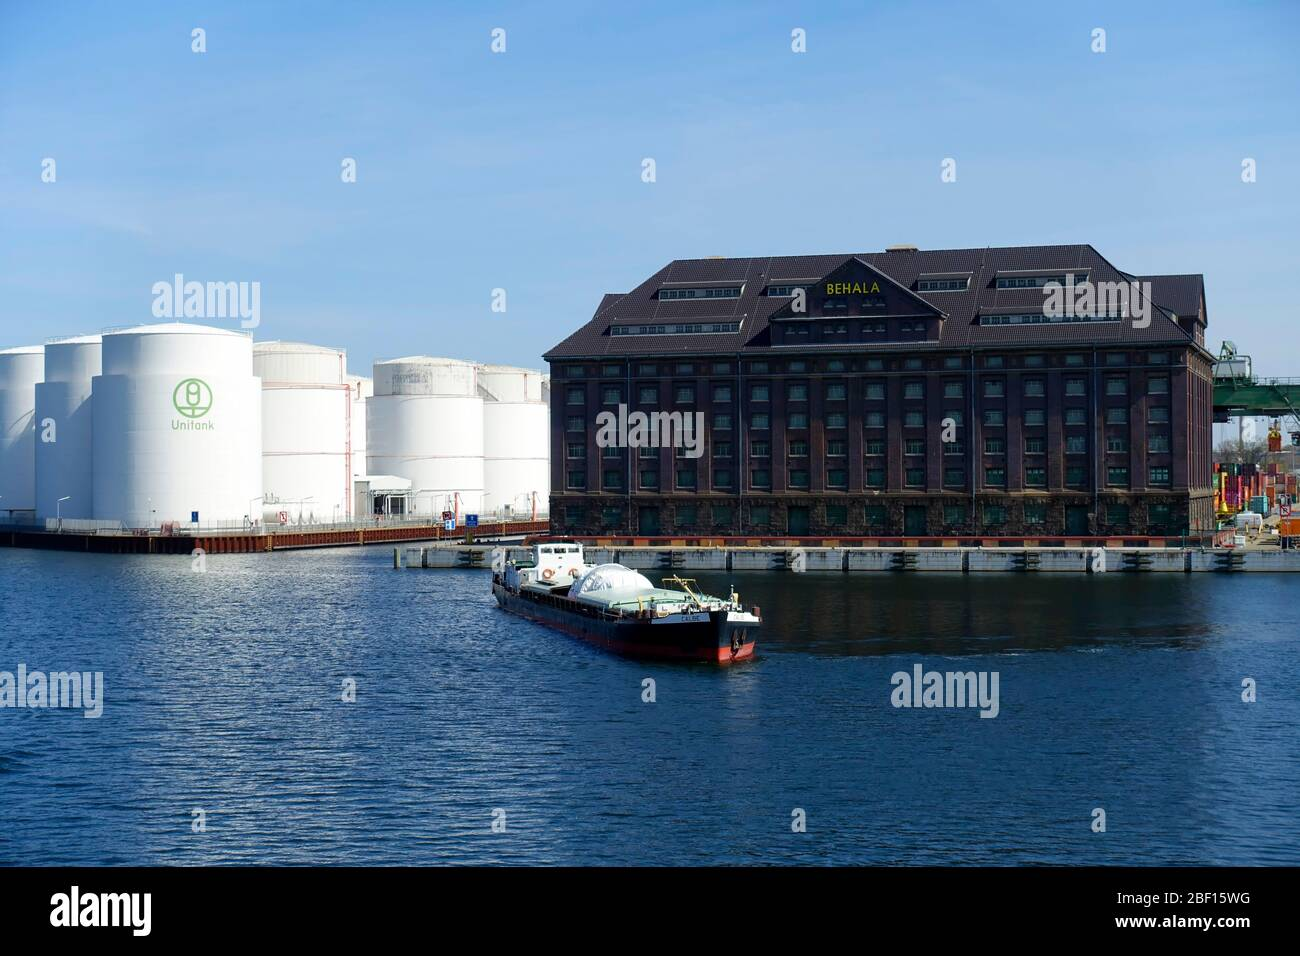 UNITANK tank farm business for the storage and product handling of mineral oil products, Westhafen, Berlin, Germany Stock Photo